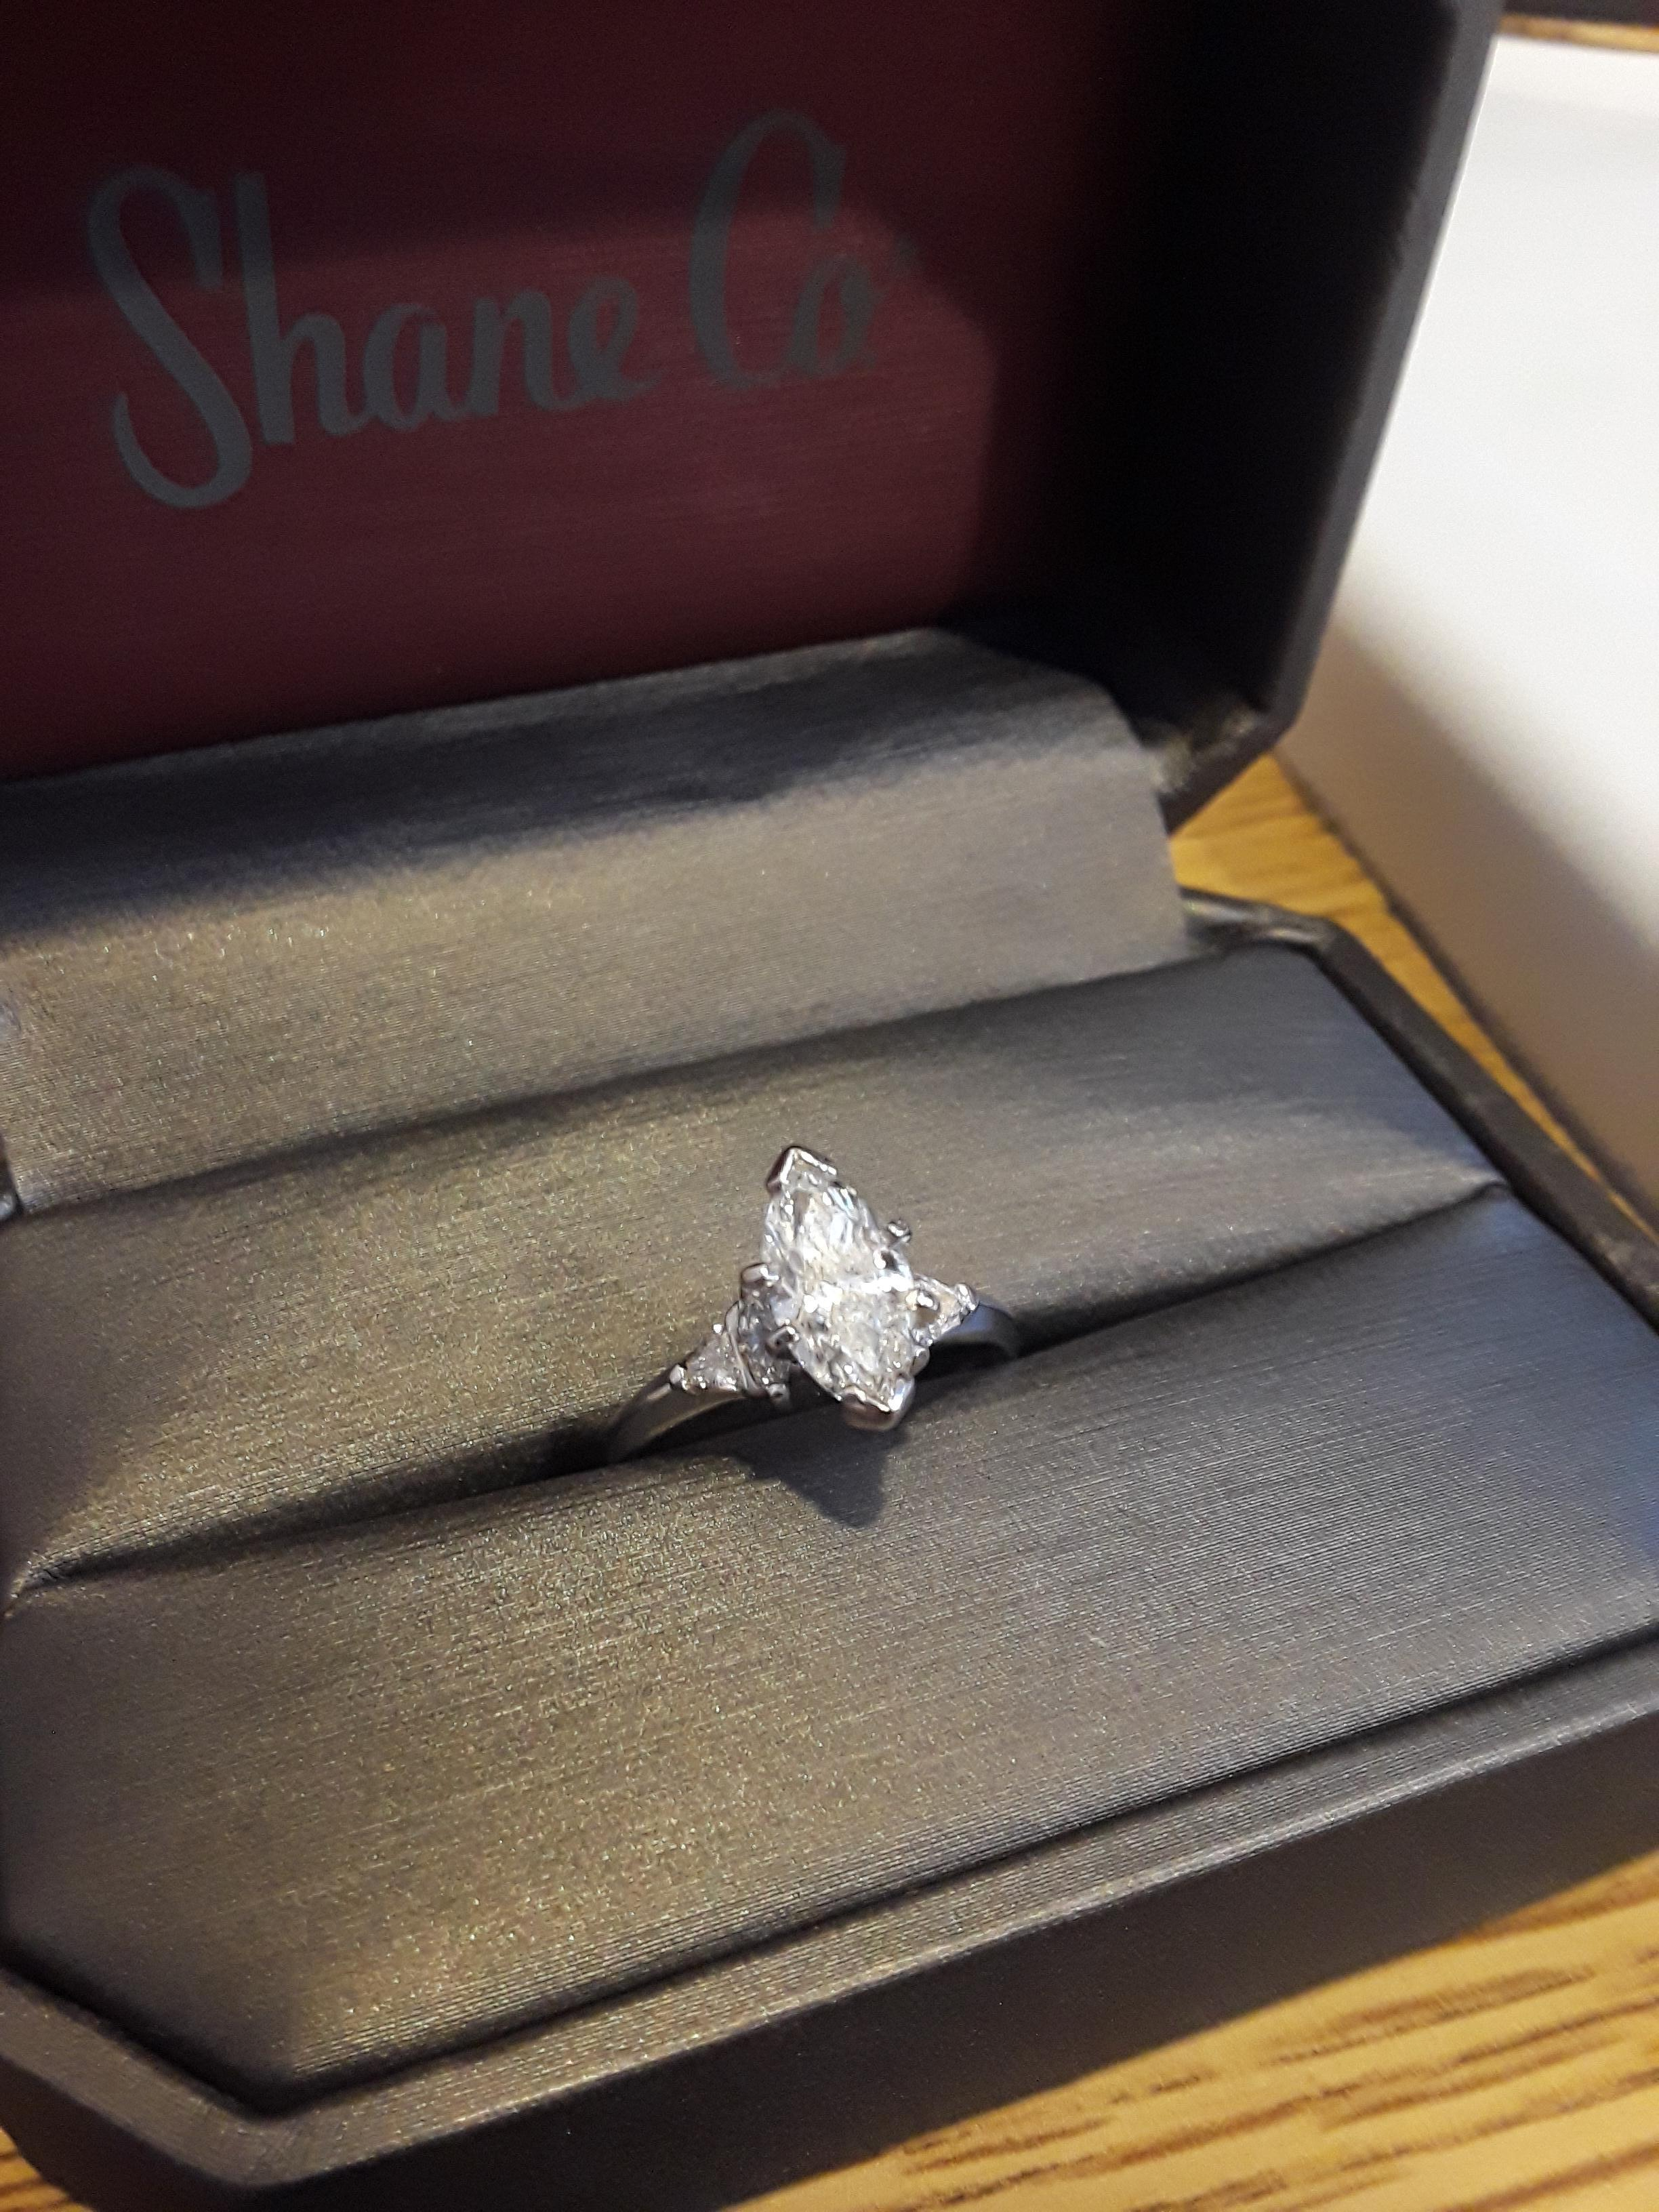 14k White Gold Ring With 1 48carat Marquise And 14k White Gold Diamond Wedding Band Mens Band Sold Separately I Do Now I Don T